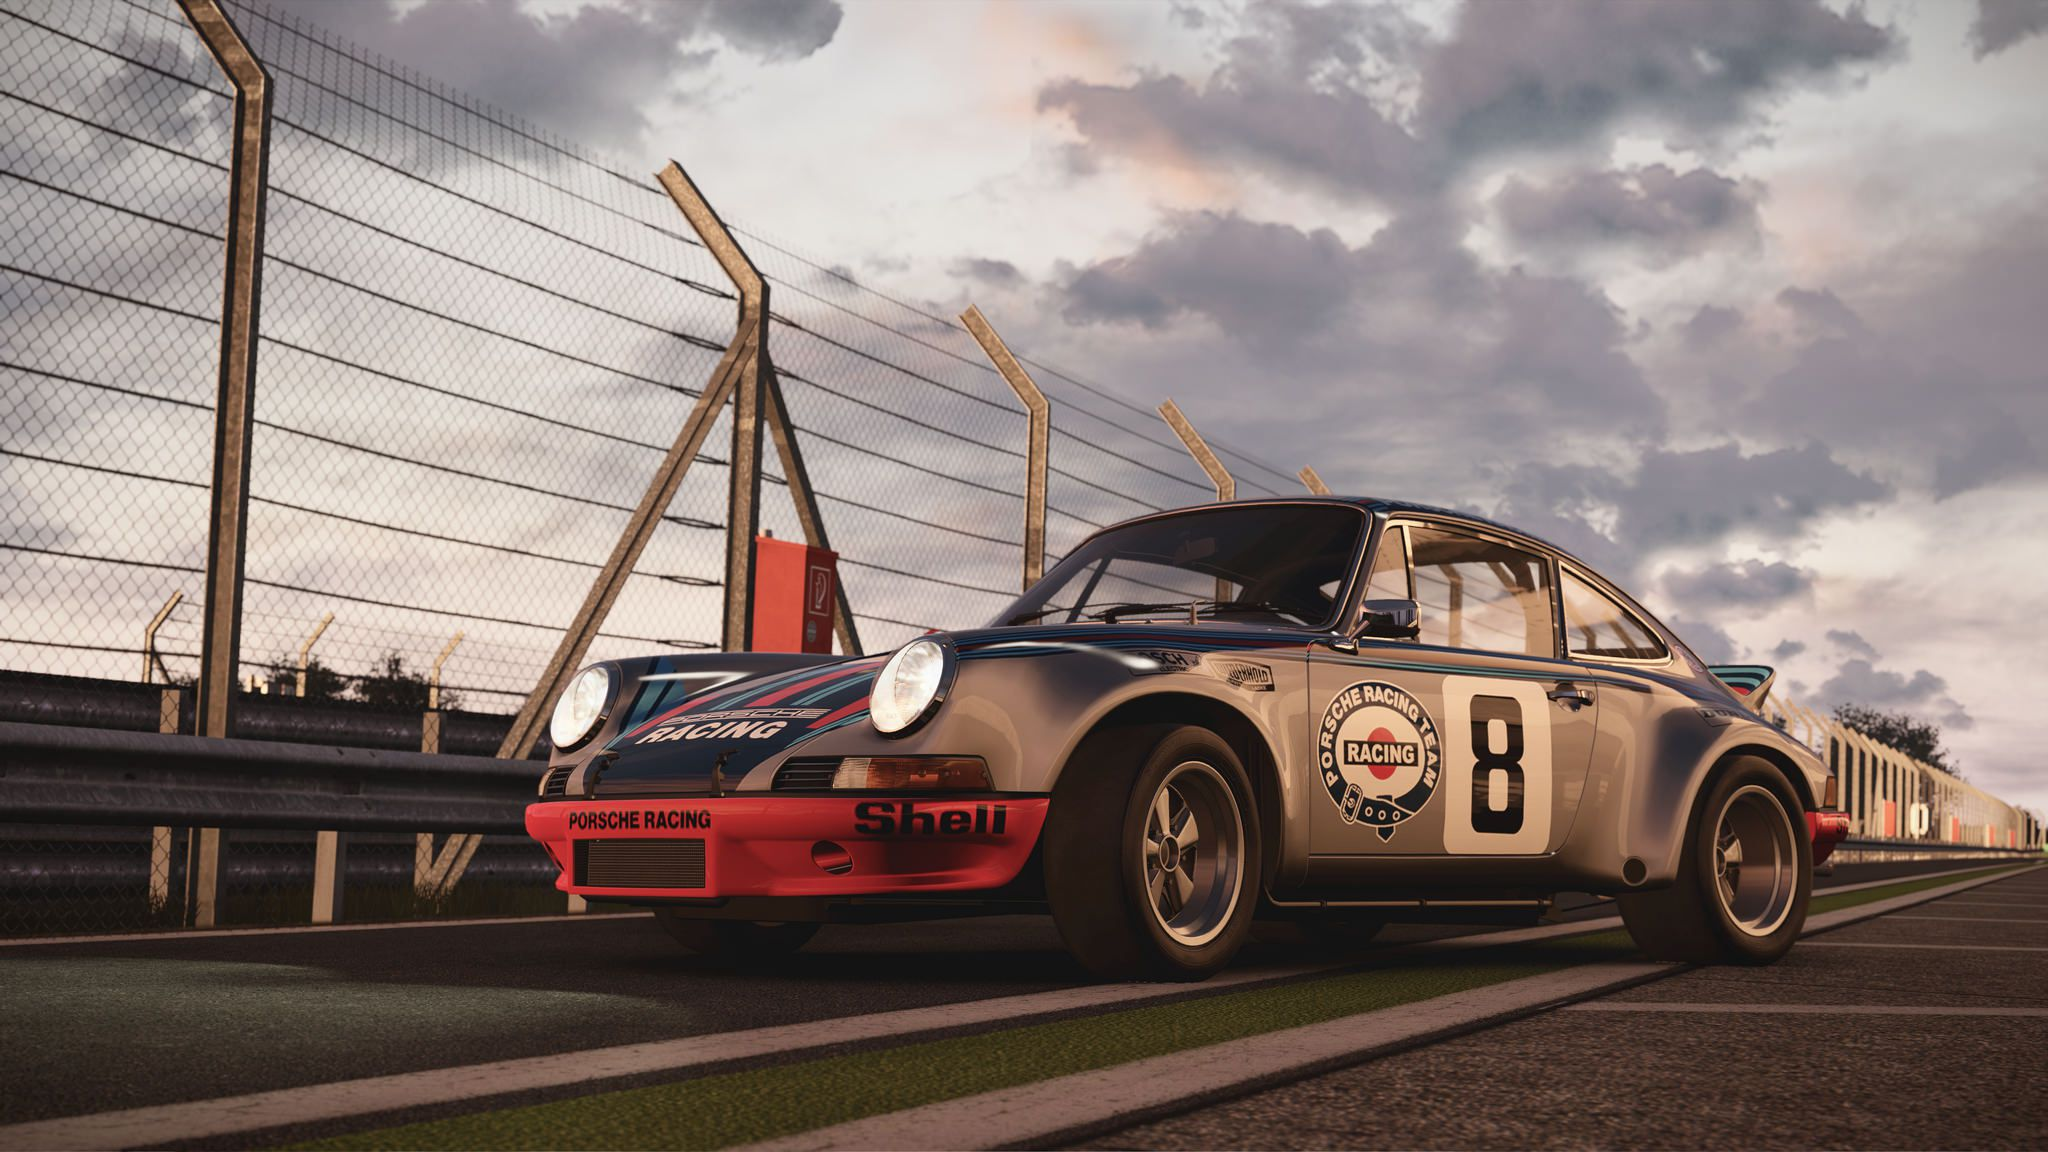 Porsche Carrera RSR Racing car